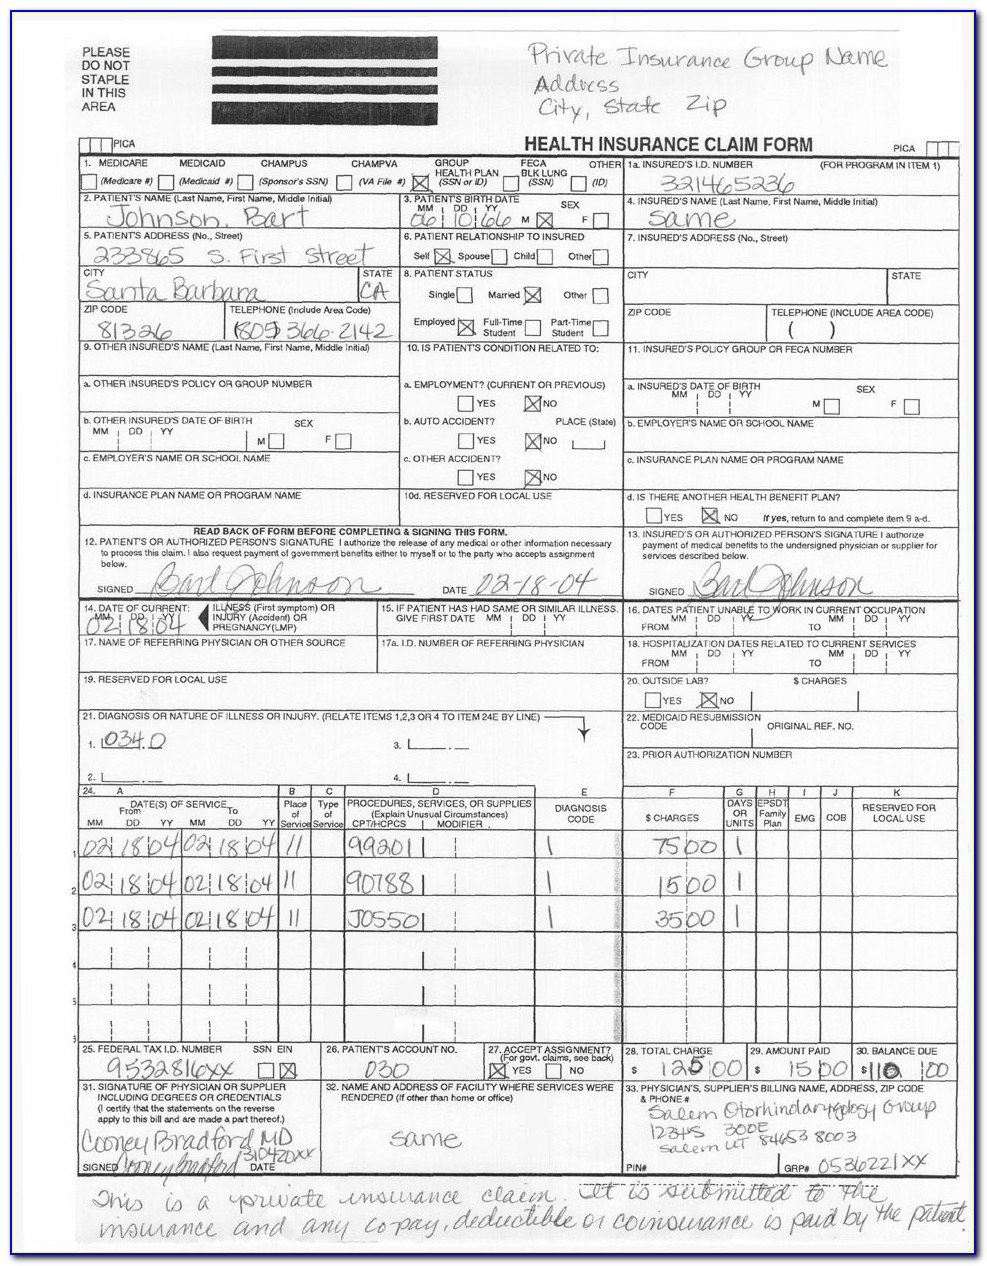 How To Fill Out Cms 1500 Form For Medicare